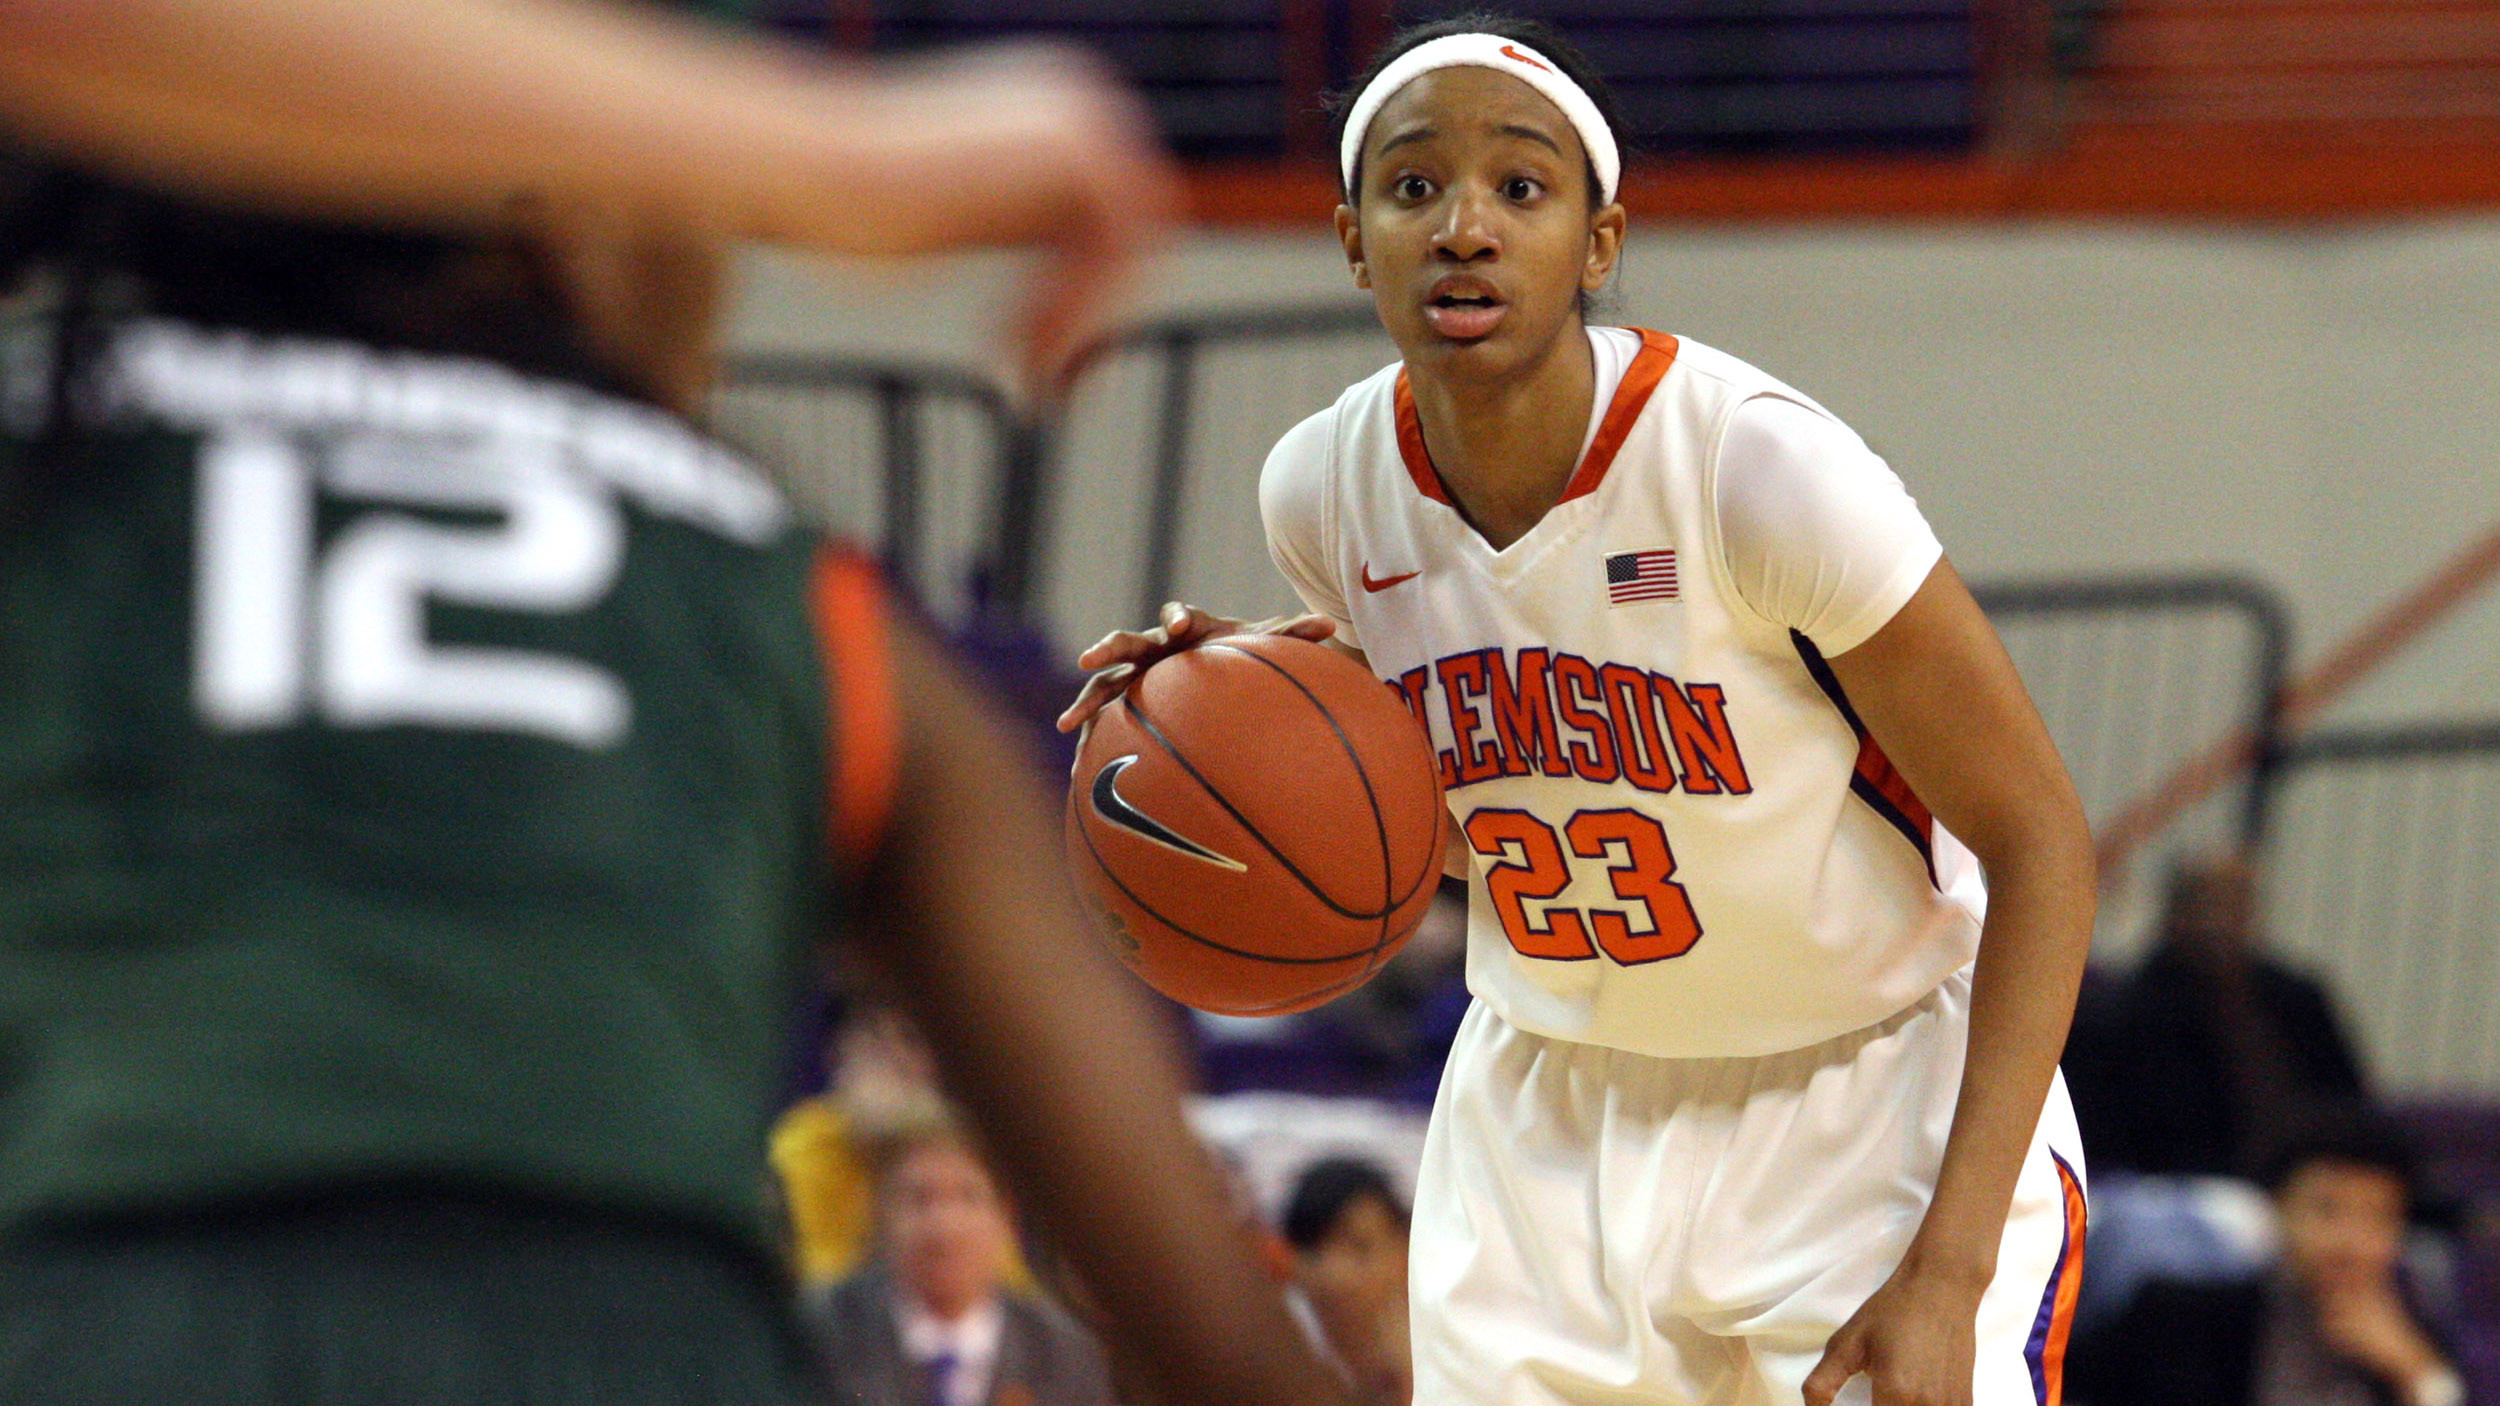 Lady Tigers Take On Wolfpack on Sunday